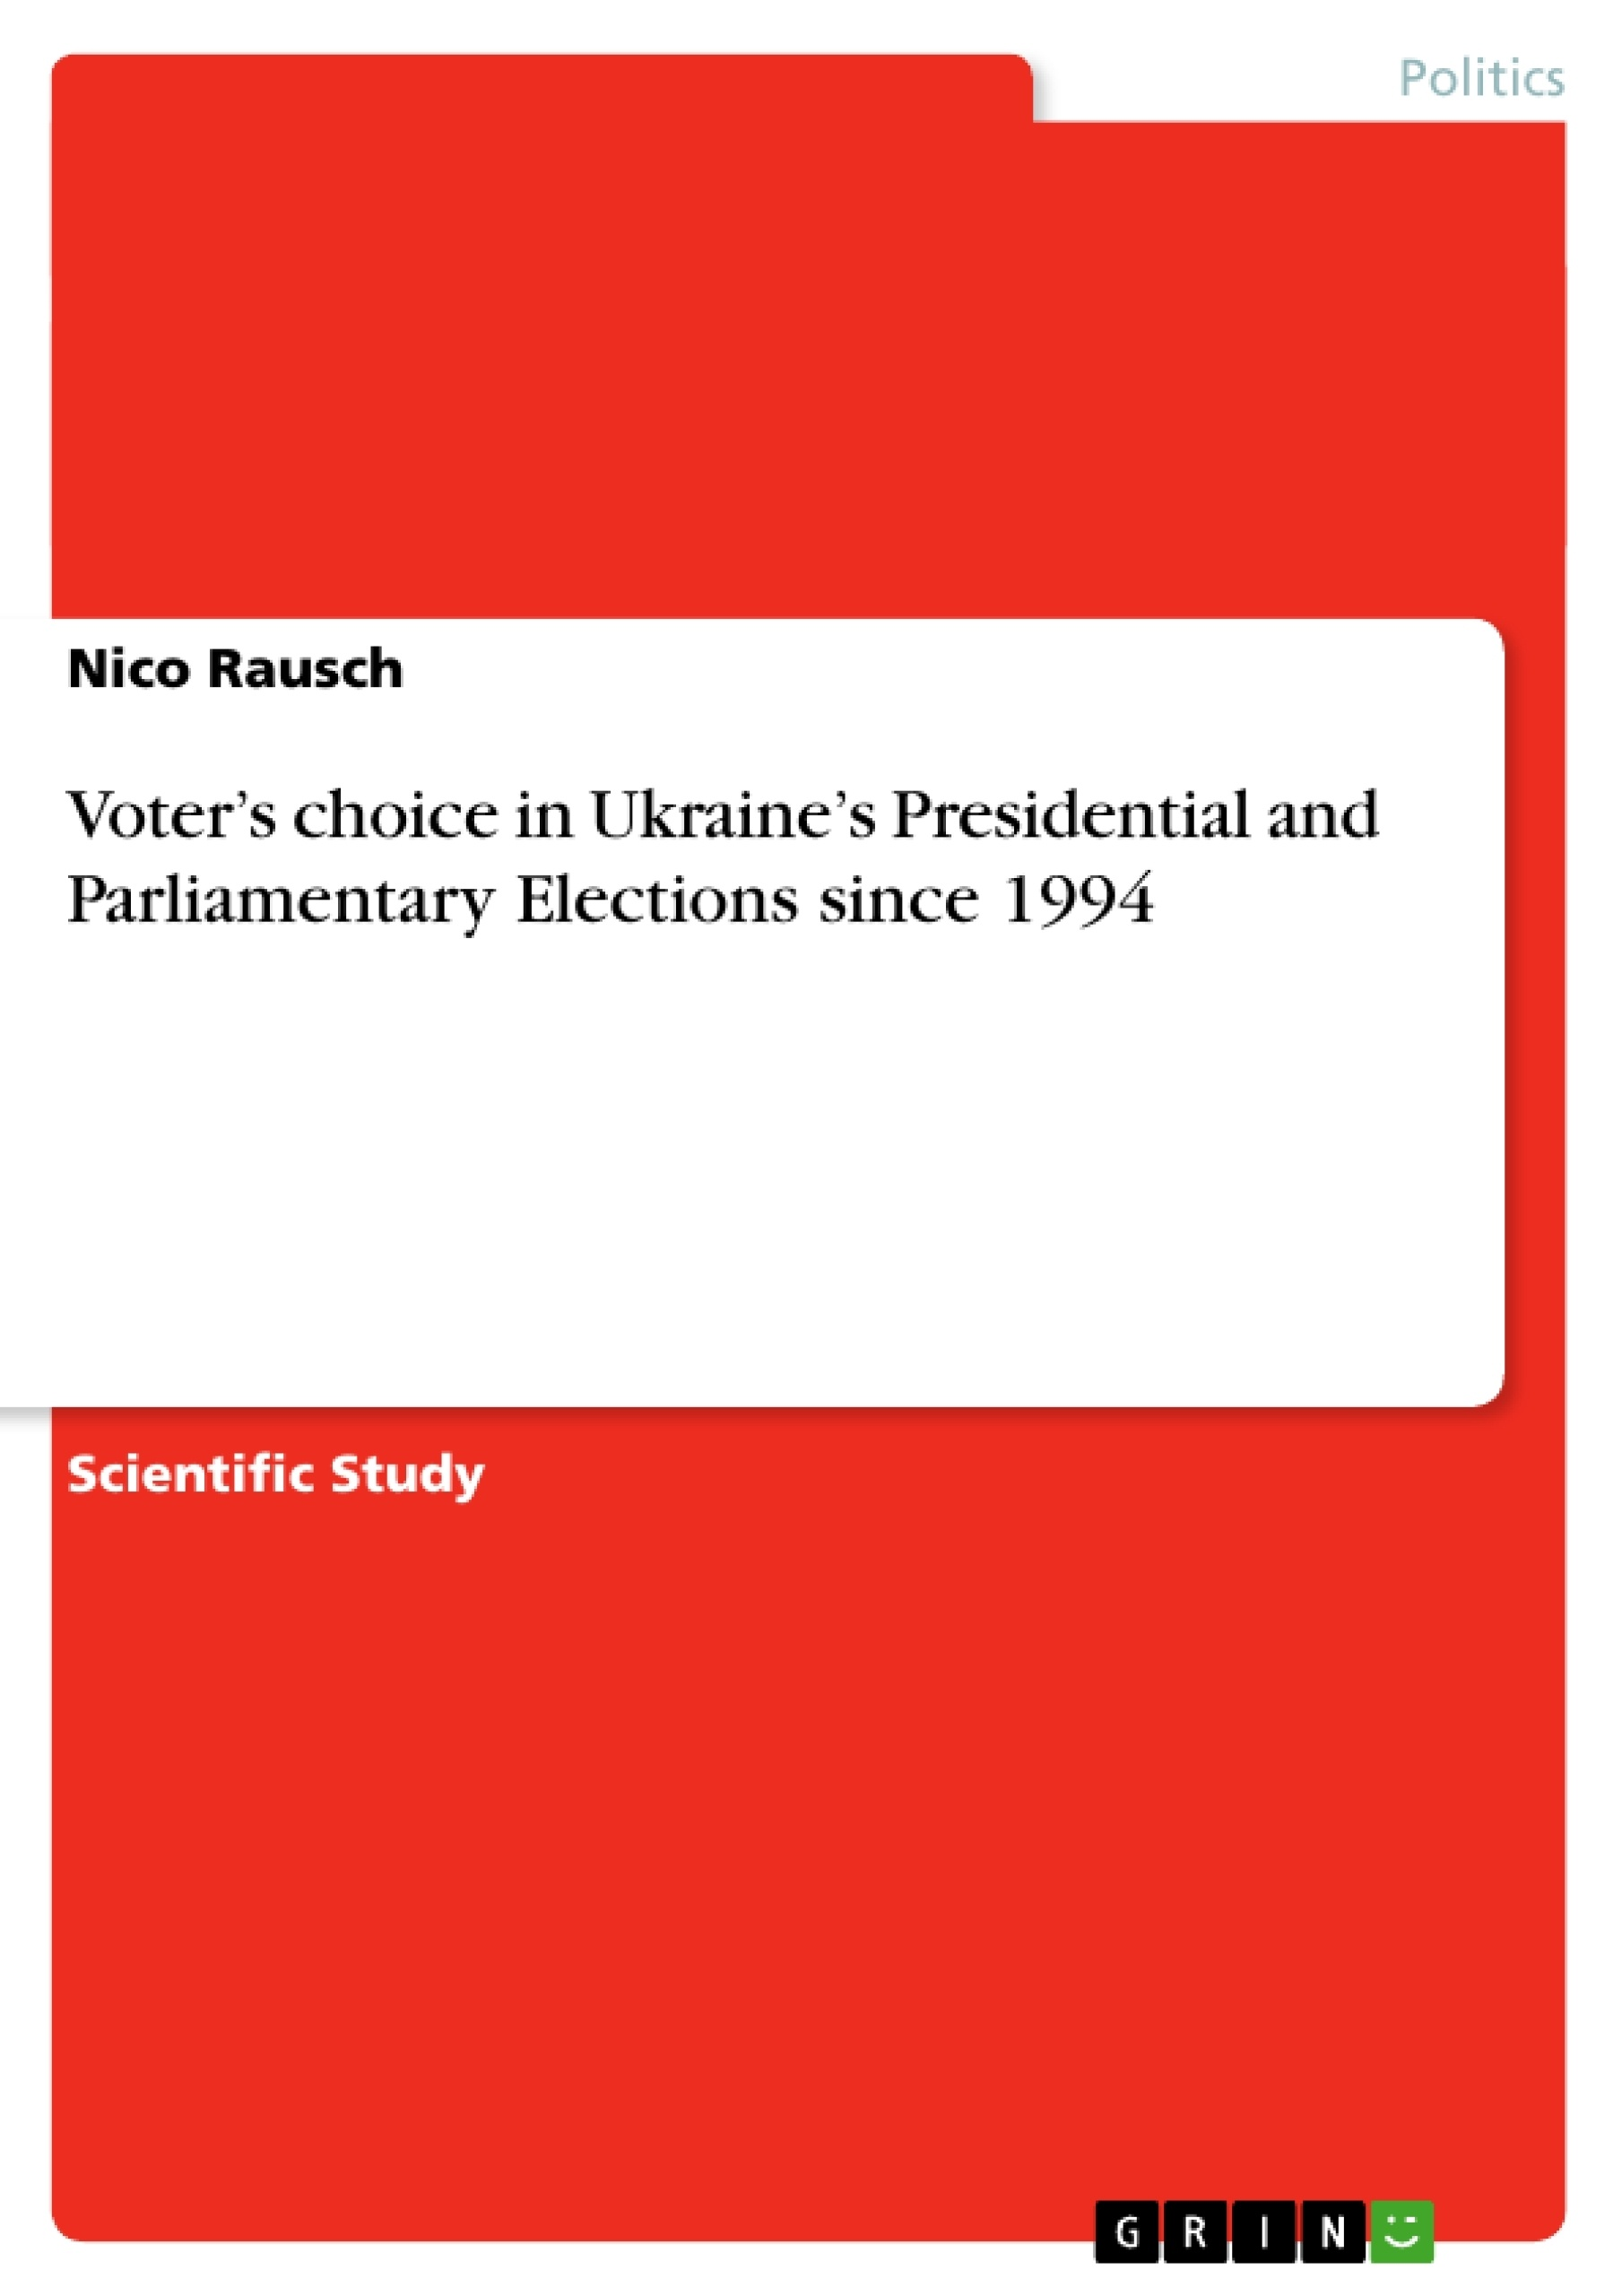 Title: Voter's choice in Ukraine's Presidential and Parliamentary Elections since 1994